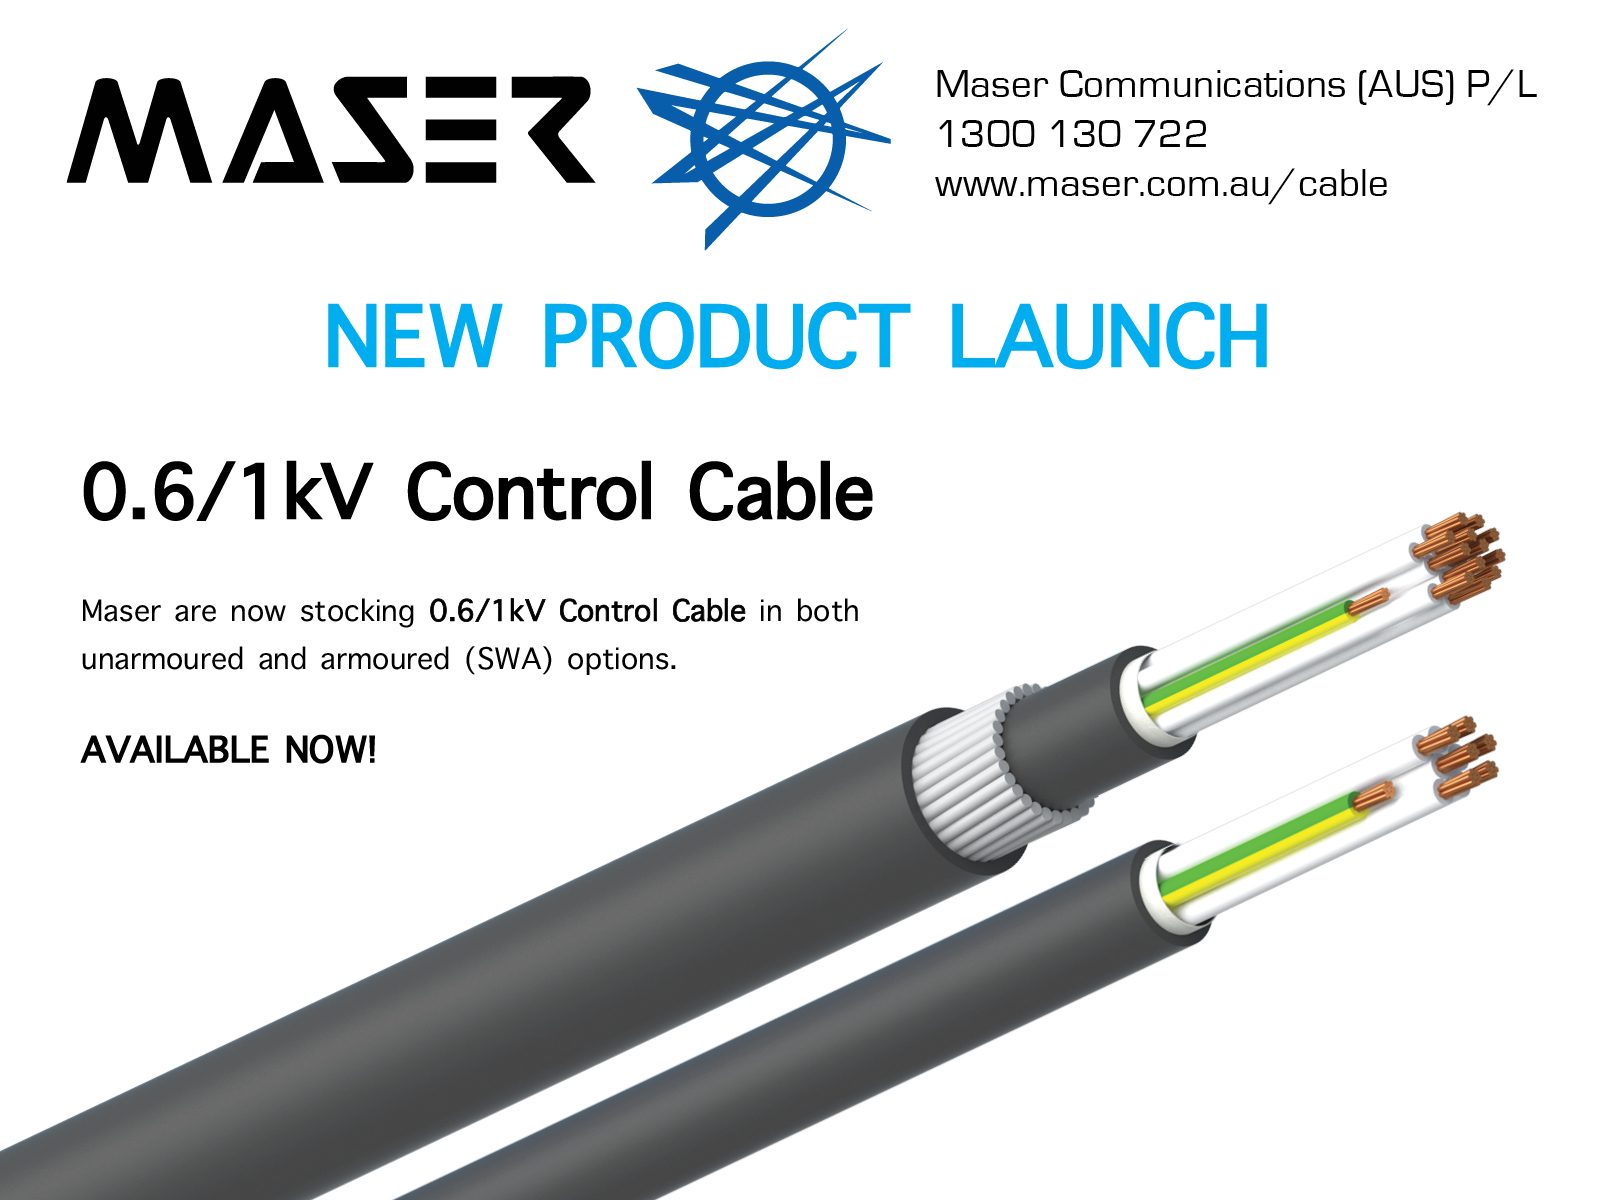 Maser now stocking 0.6/1kV Control Cable in both unarmoured and armoured (SWA) options